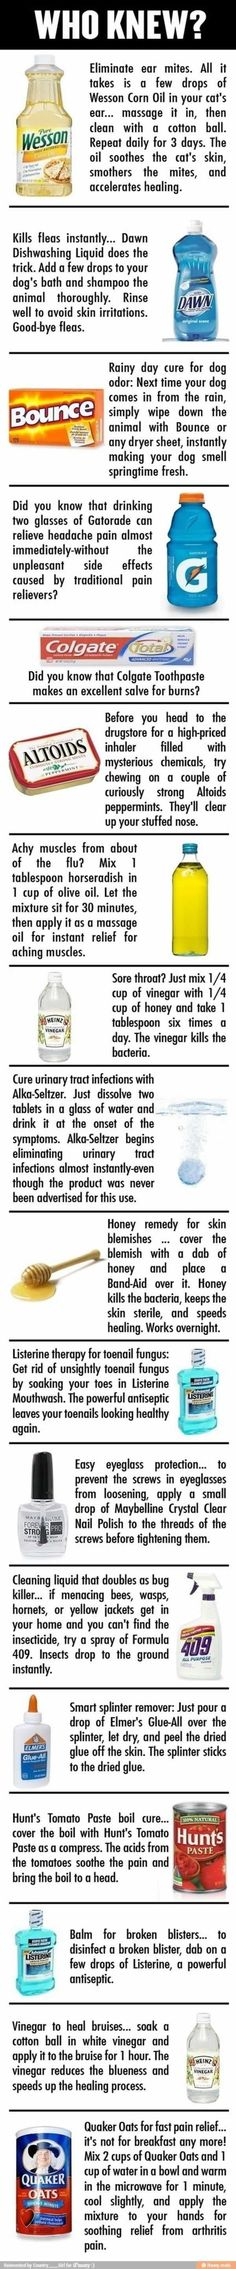 Home remedies